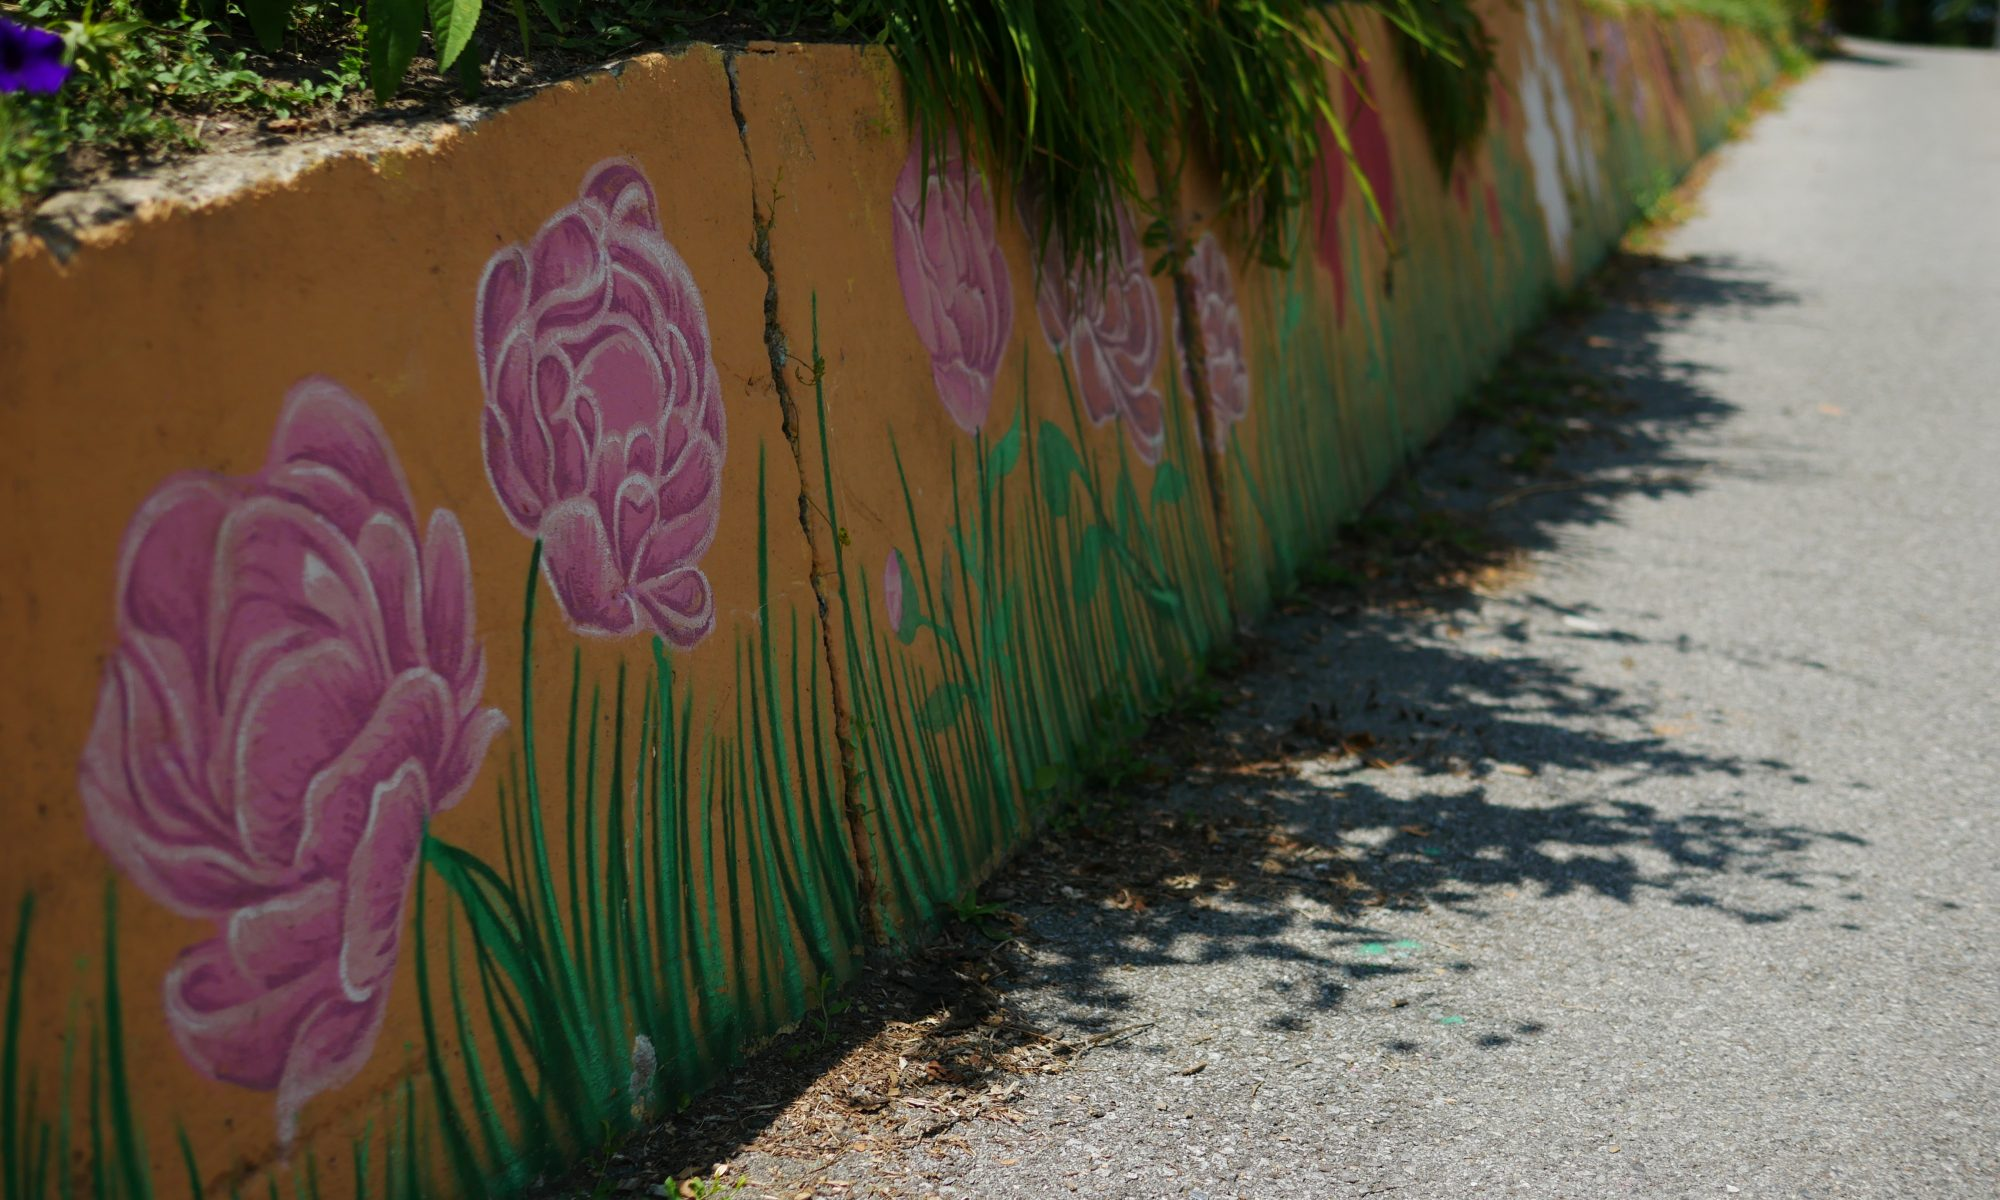 pink painted flowers adorn an urban driveway